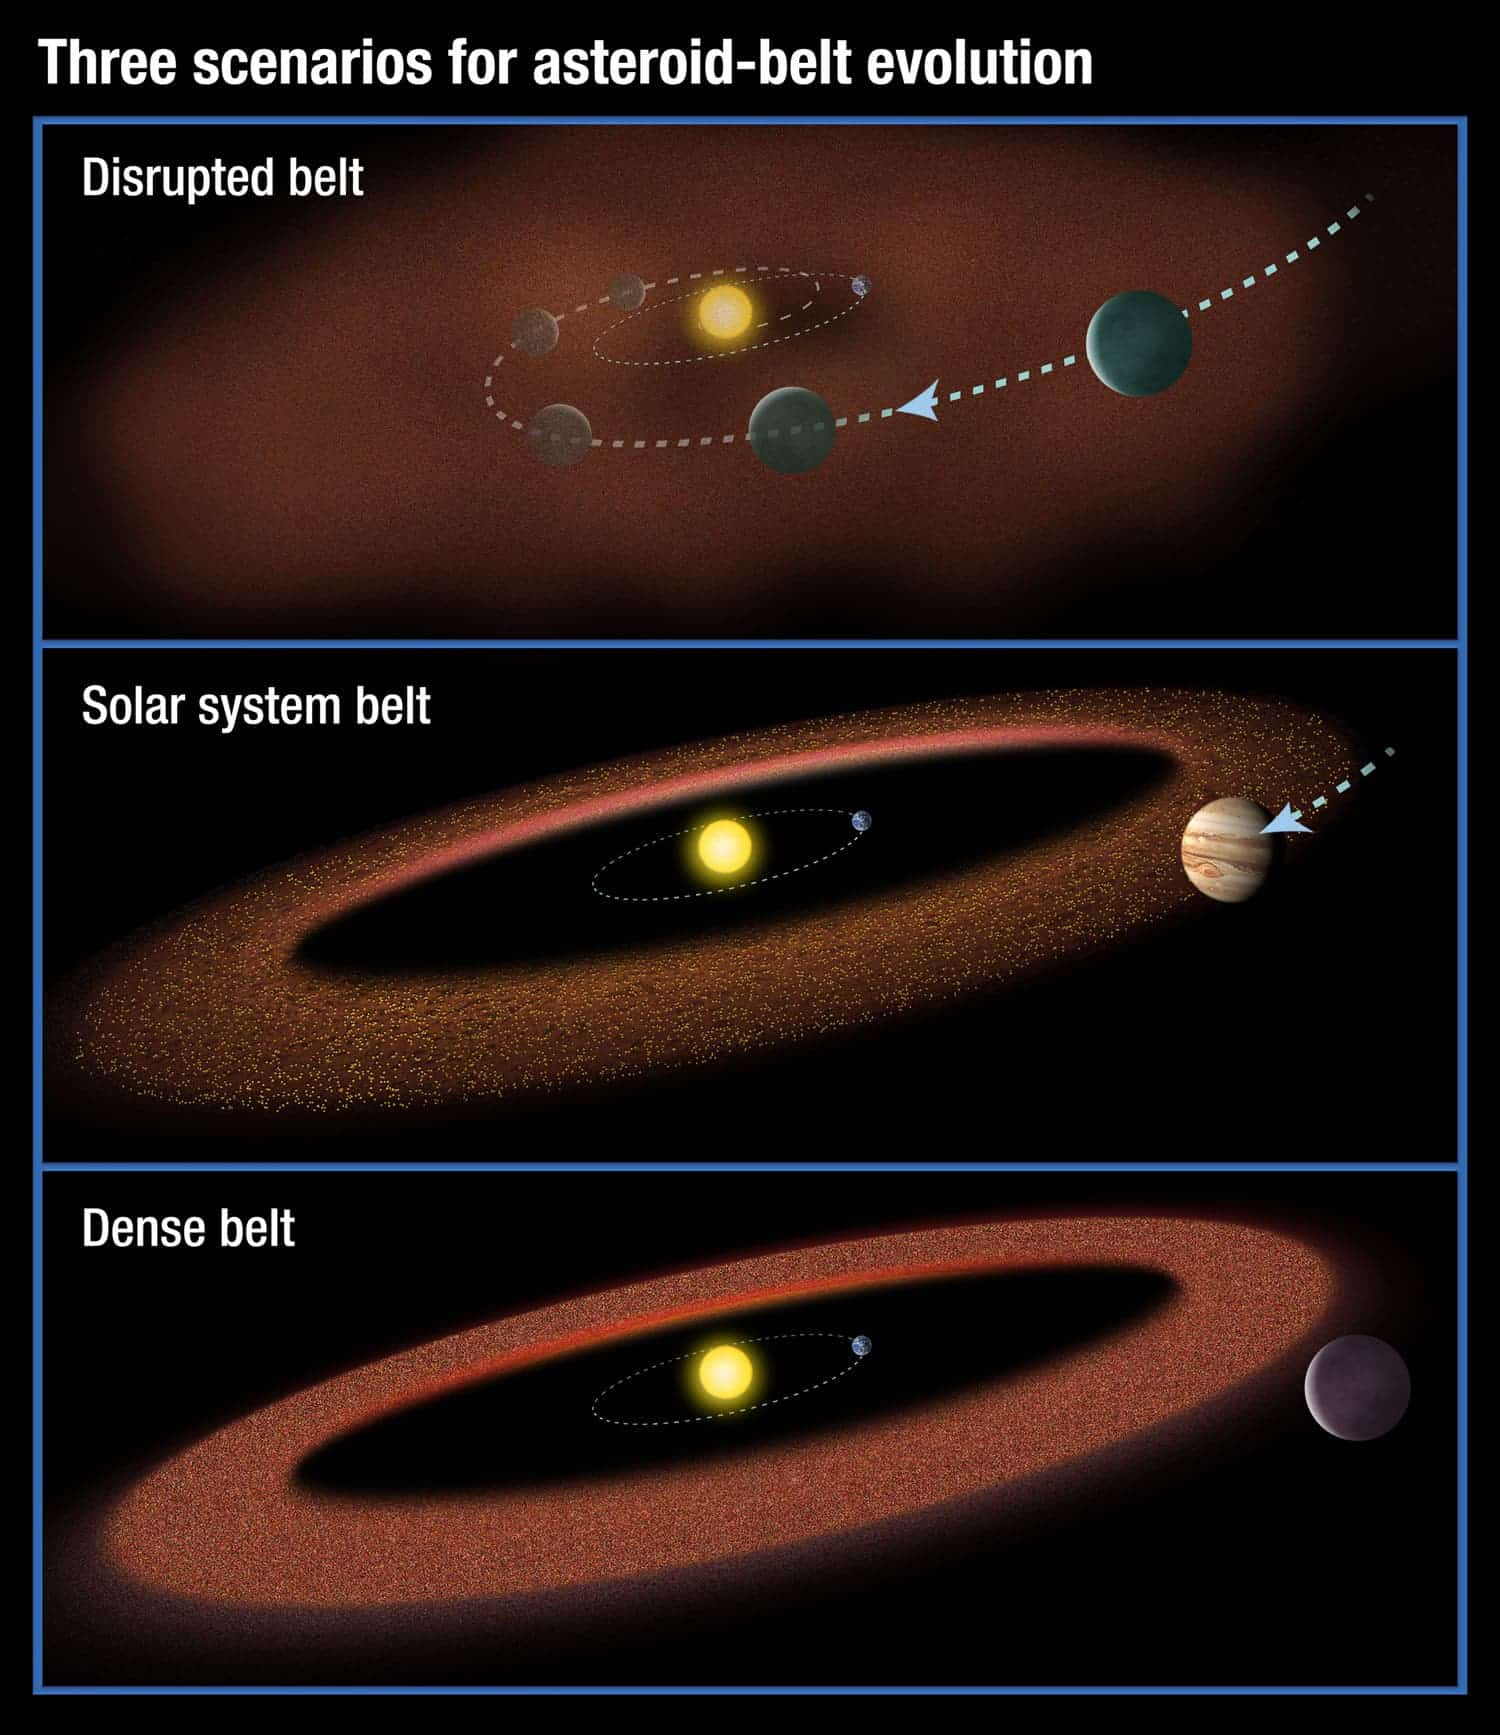 Three possible scenarios for the evolution of asteroid belts. Top: A Jupiter-size planet migrates through the belt, scattering material and inhibiting the formation of life on planets. Middle: A Jupiter-size planet moves slightly inward but is just outside the belt (this is the model proposed for our solar system). Bottom: A large planet does not migrate at all, creating a massive asteroid belt. Material from the hefty asteroid belt would bombard planets, possibly preventing life from evolving.